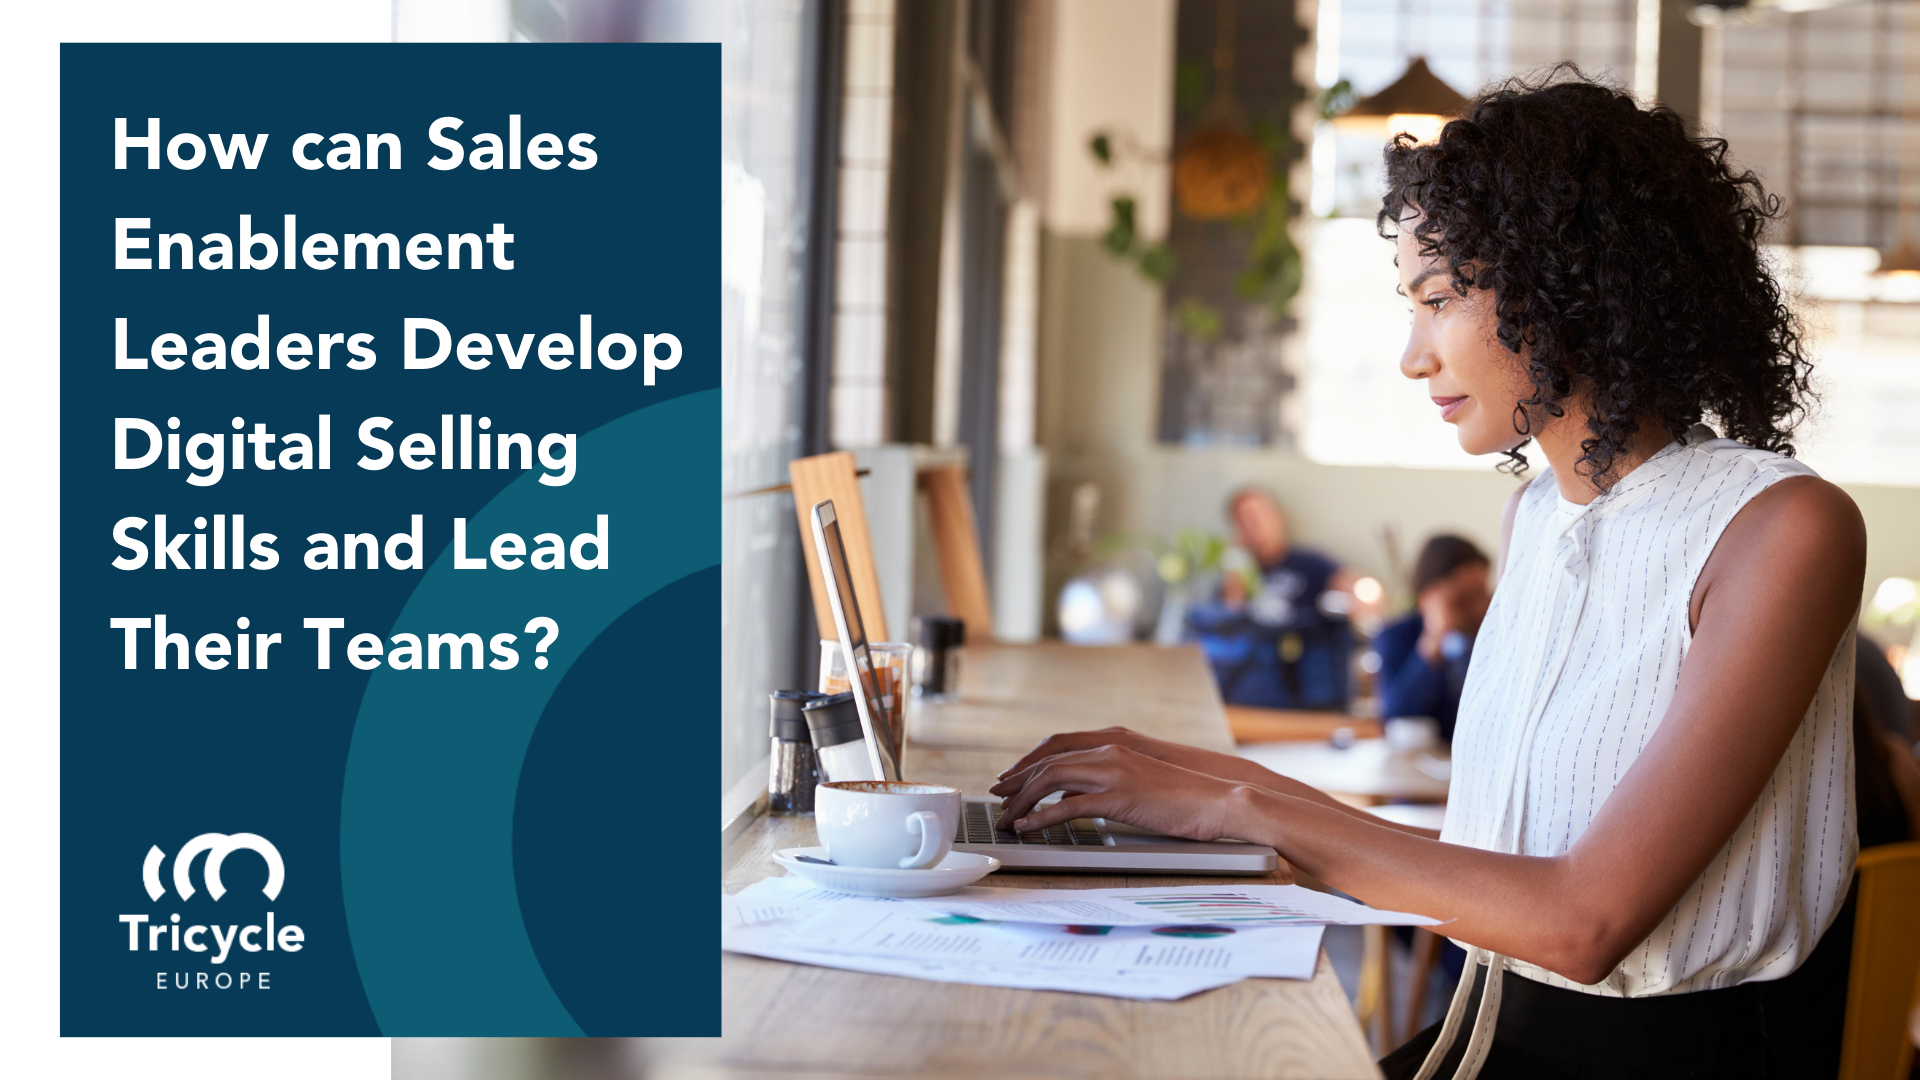 How can Sales Enablement Leaders Develop Digital Selling Skills and Lead Their Teams?